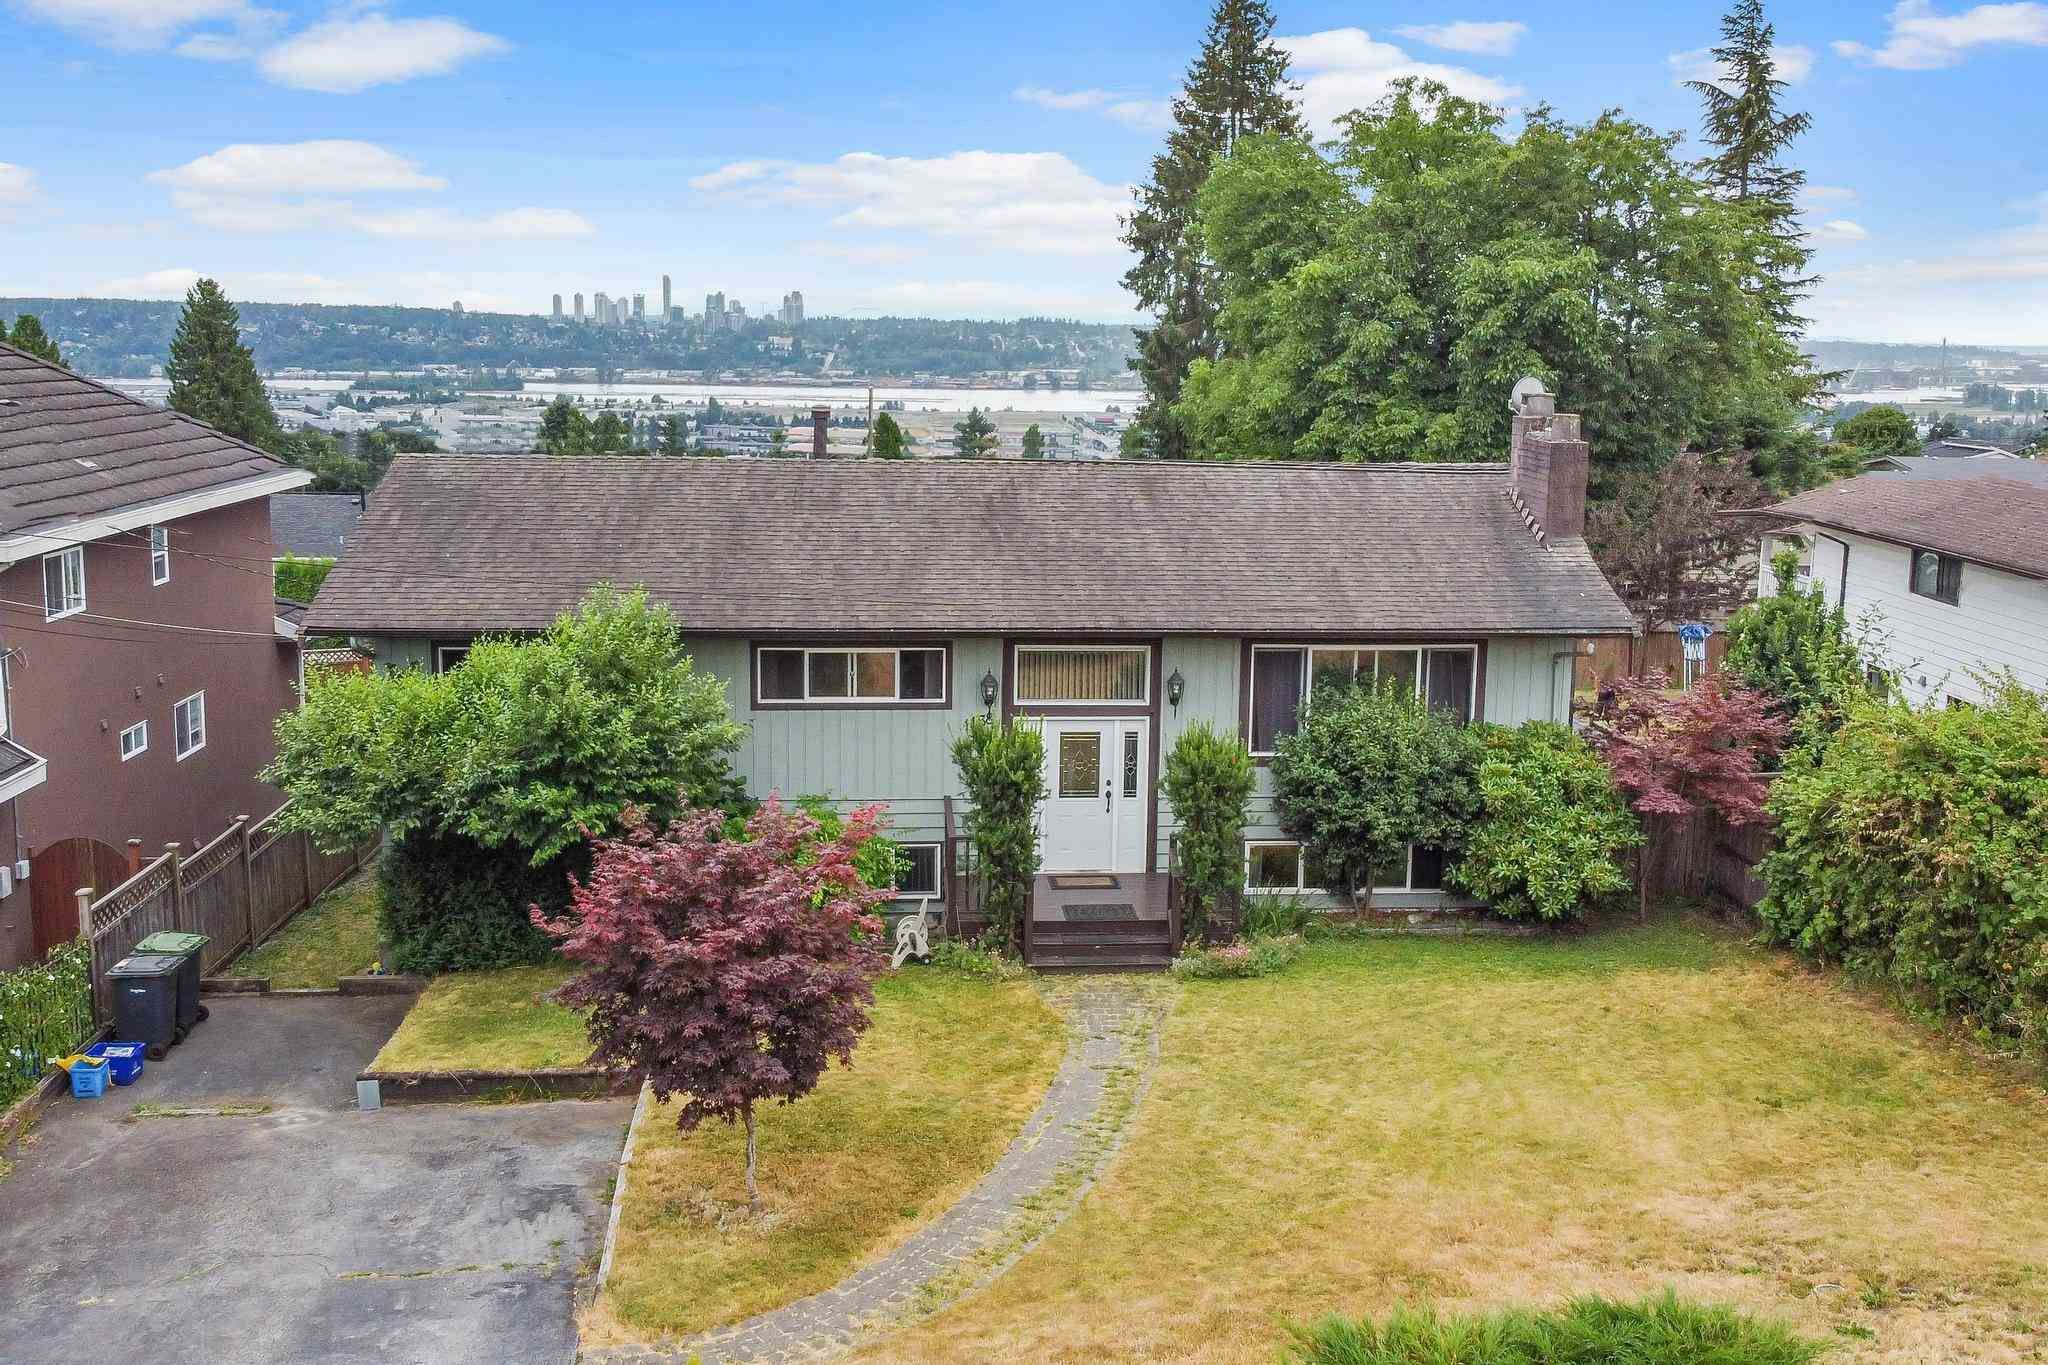 Main Photo: 1138 CHARLAND Avenue in Coquitlam: Central Coquitlam House for sale : MLS®# R2604391